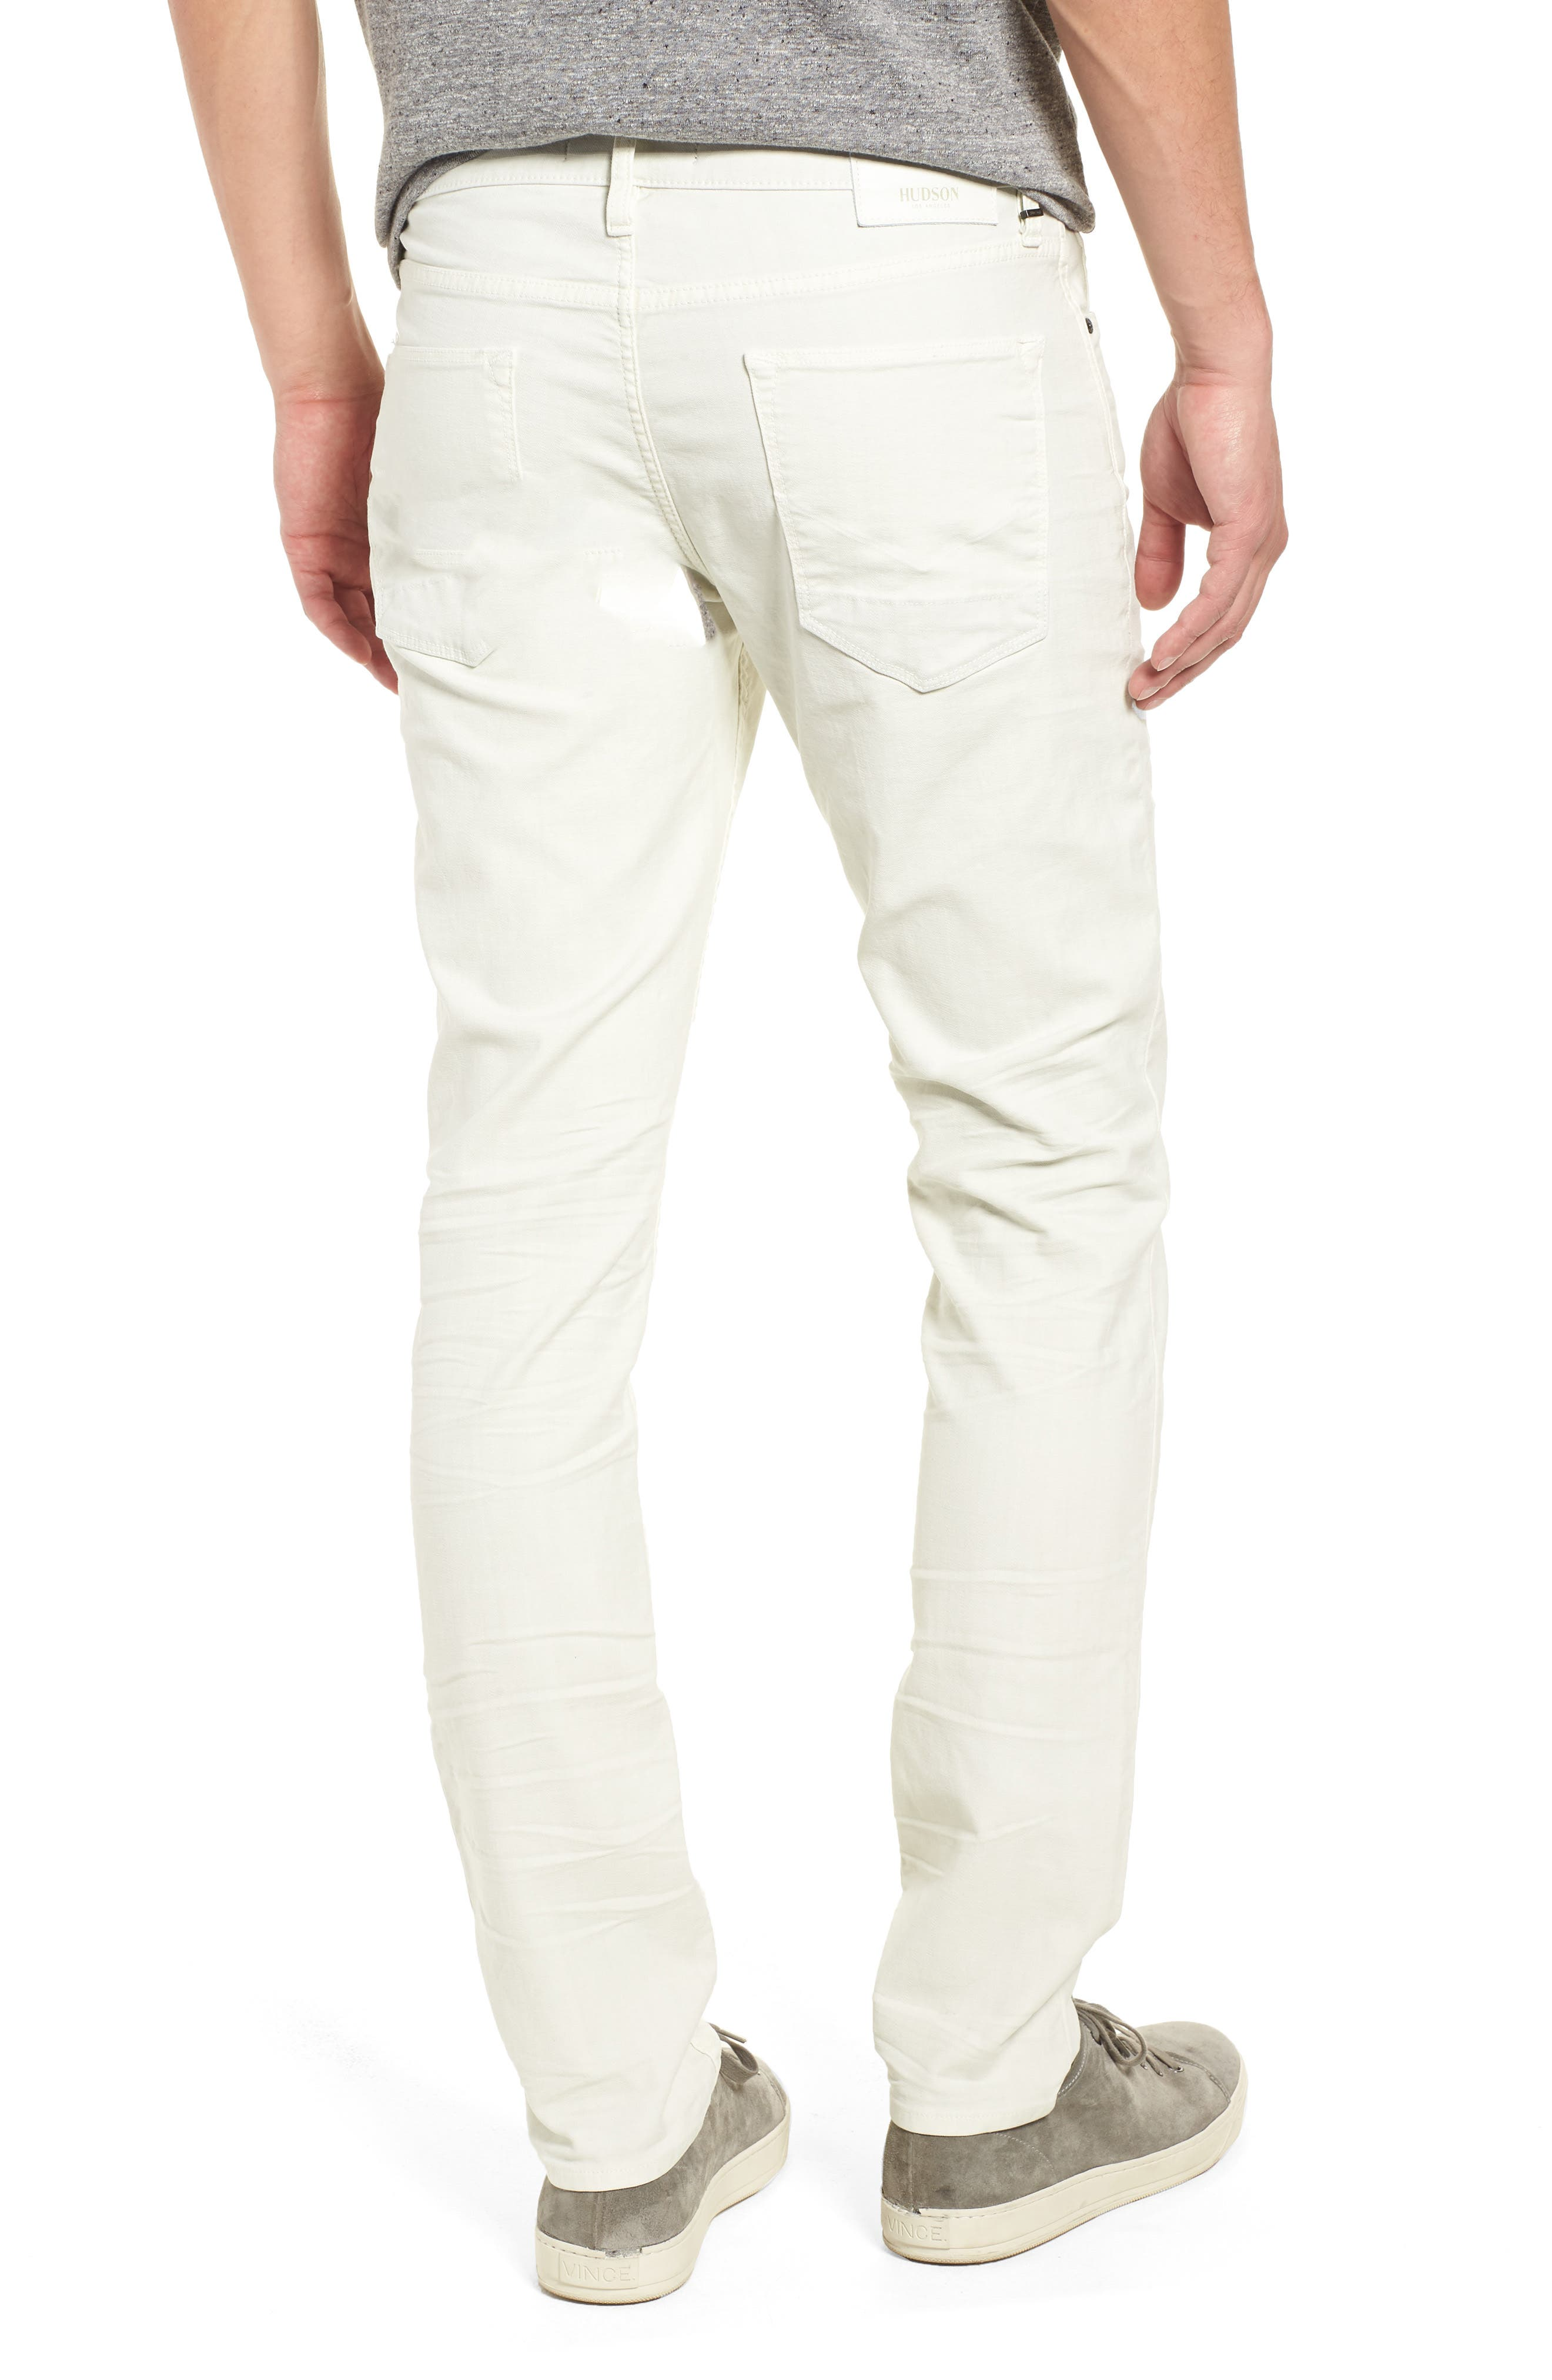 HUDSON JEANS, Axl Skinny Fit Jeans, Alternate thumbnail 2, color, DIRTY WHITE